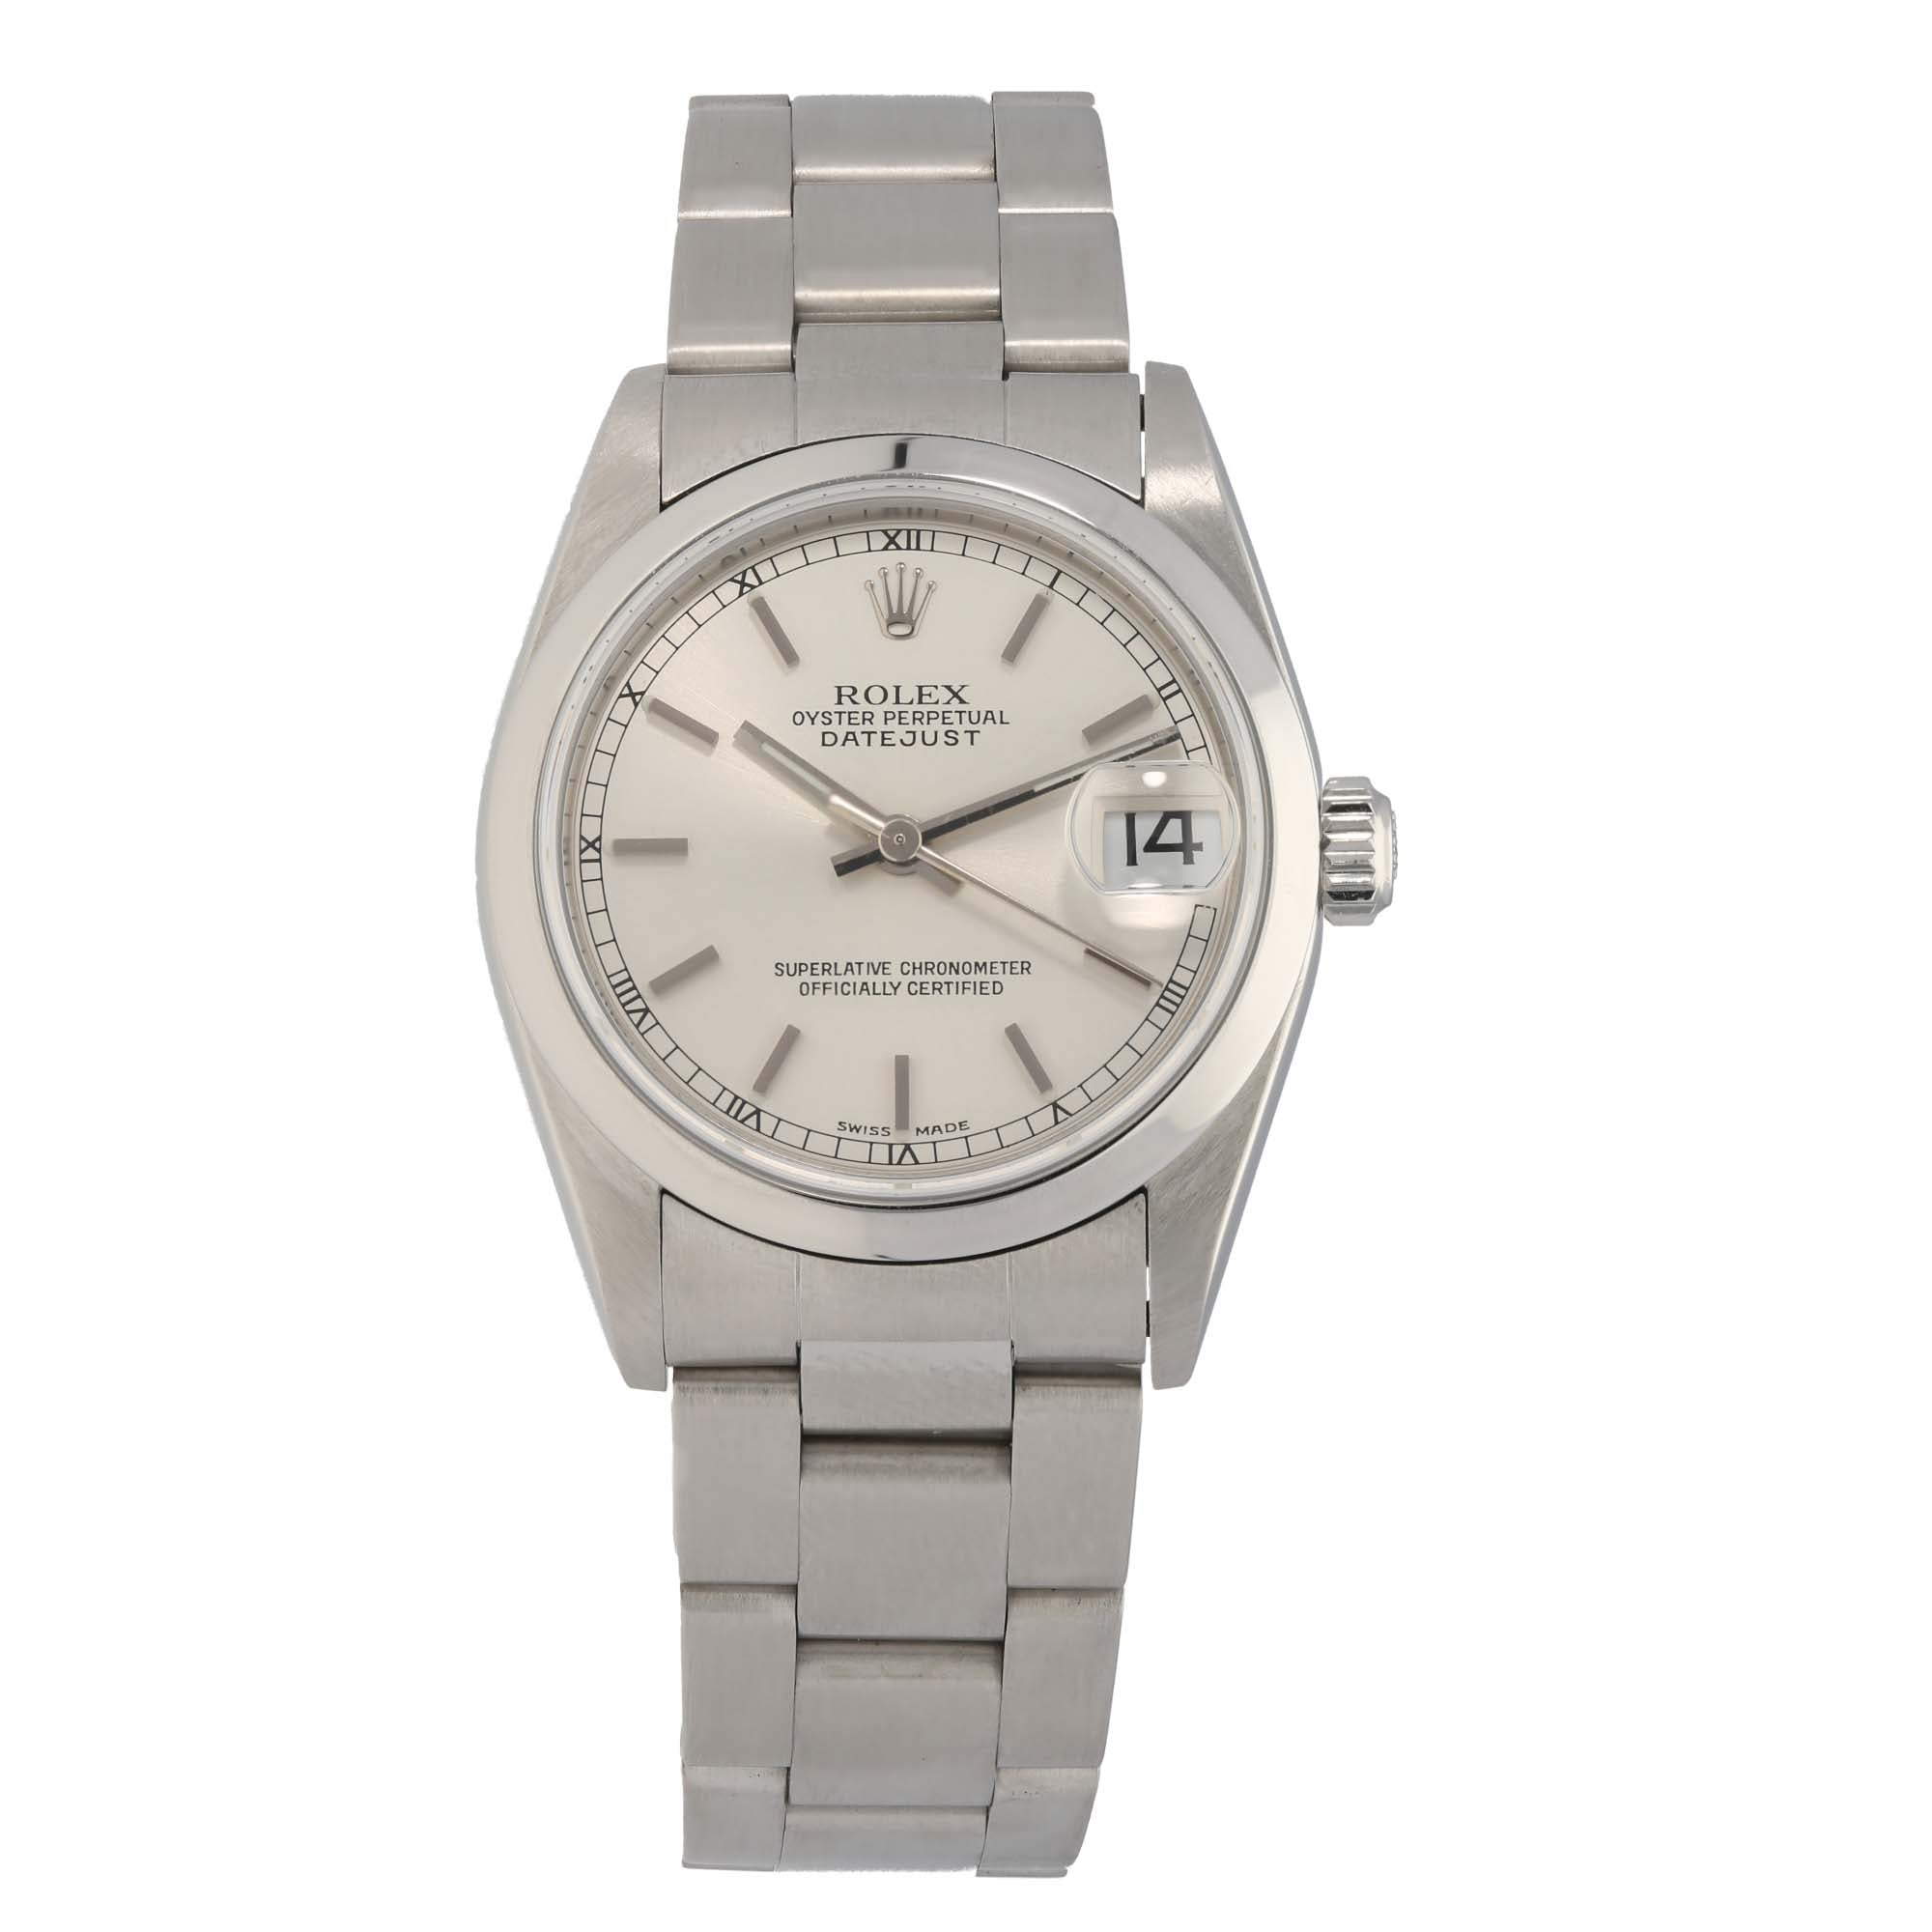 Rolex Datejust 78240 31mm Stainless Steel Unisex Watch